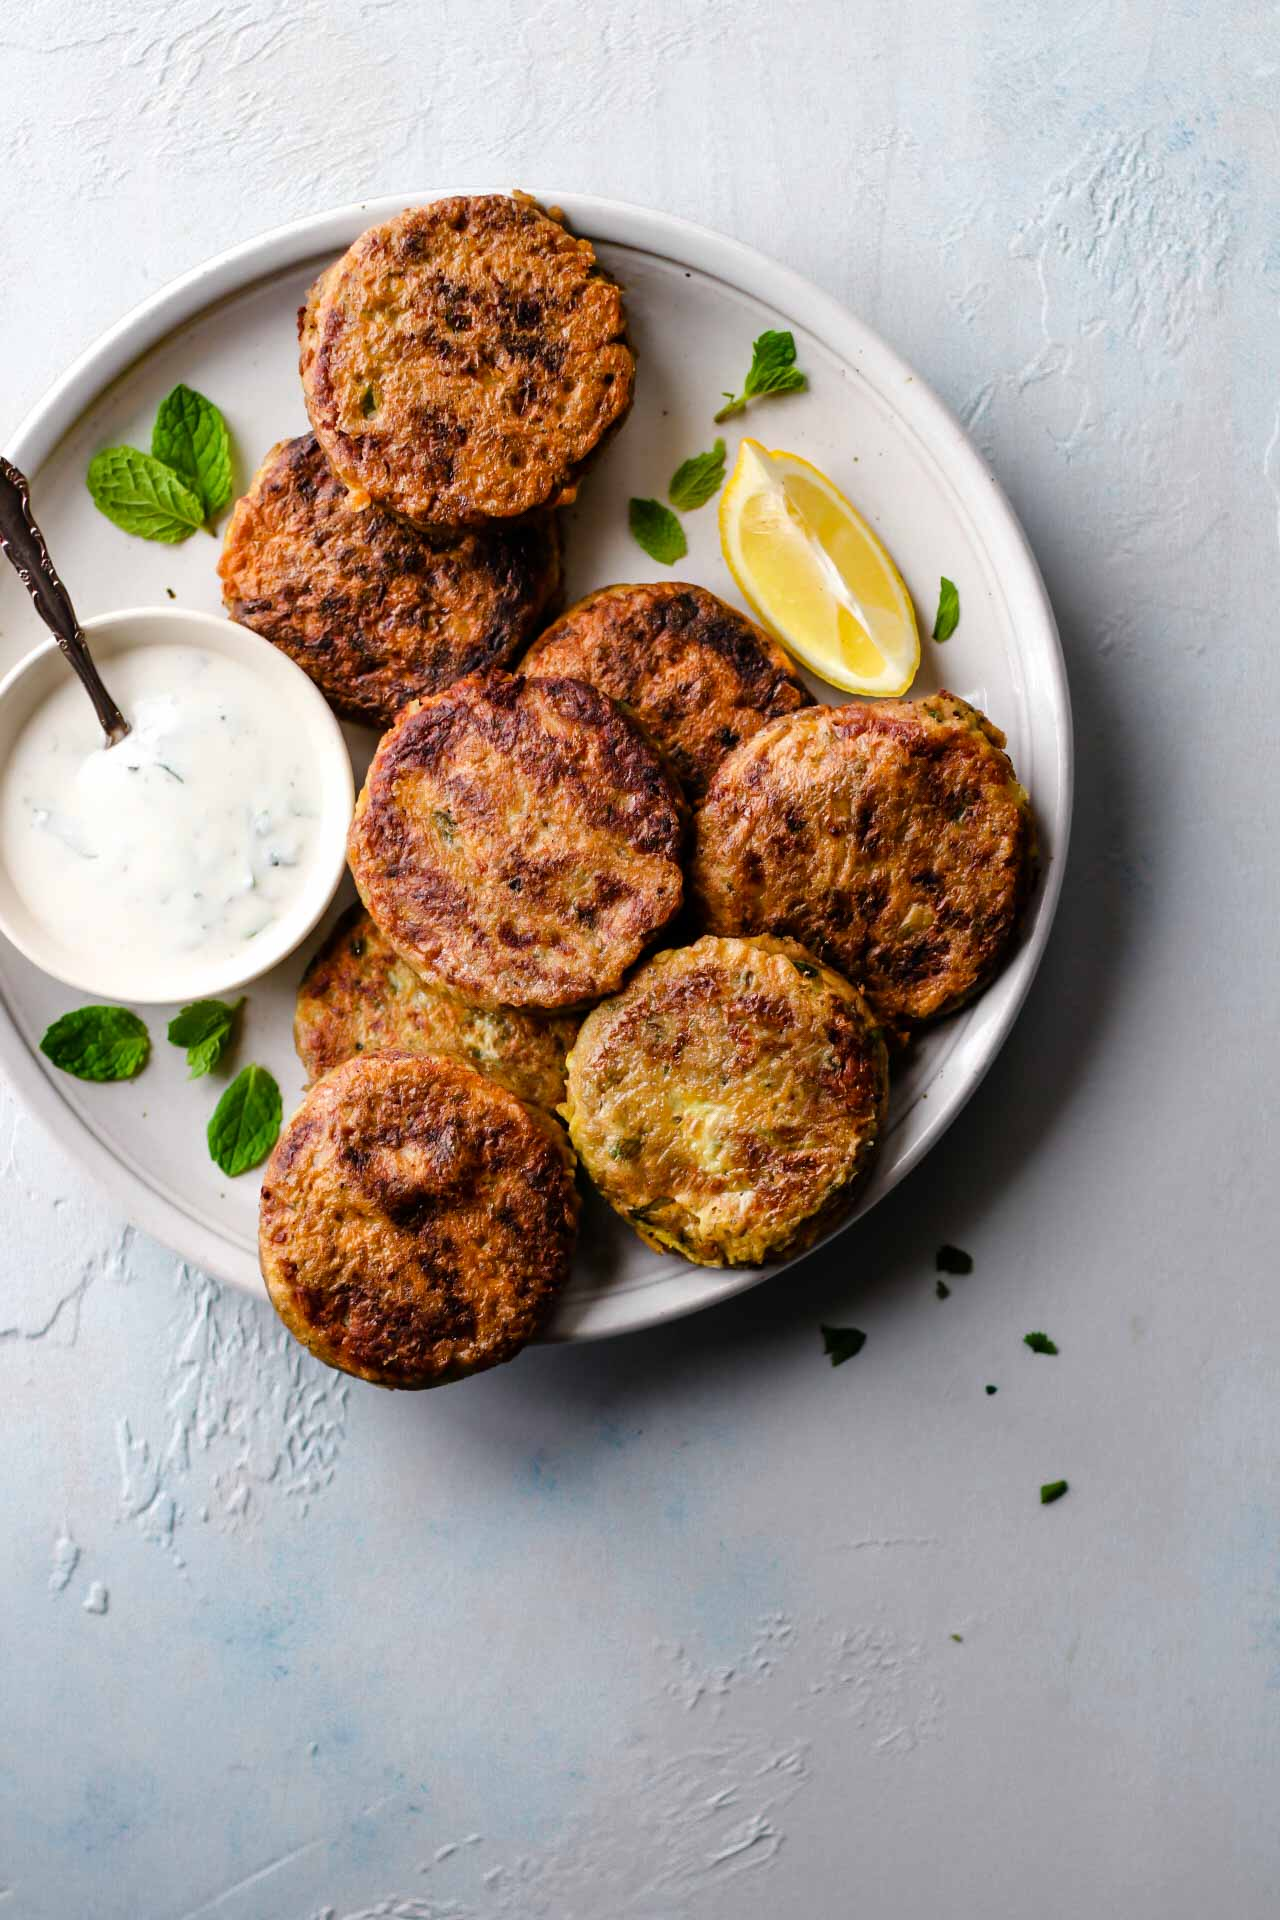 Shami Kebabs in a plate with raita and lemon on the side